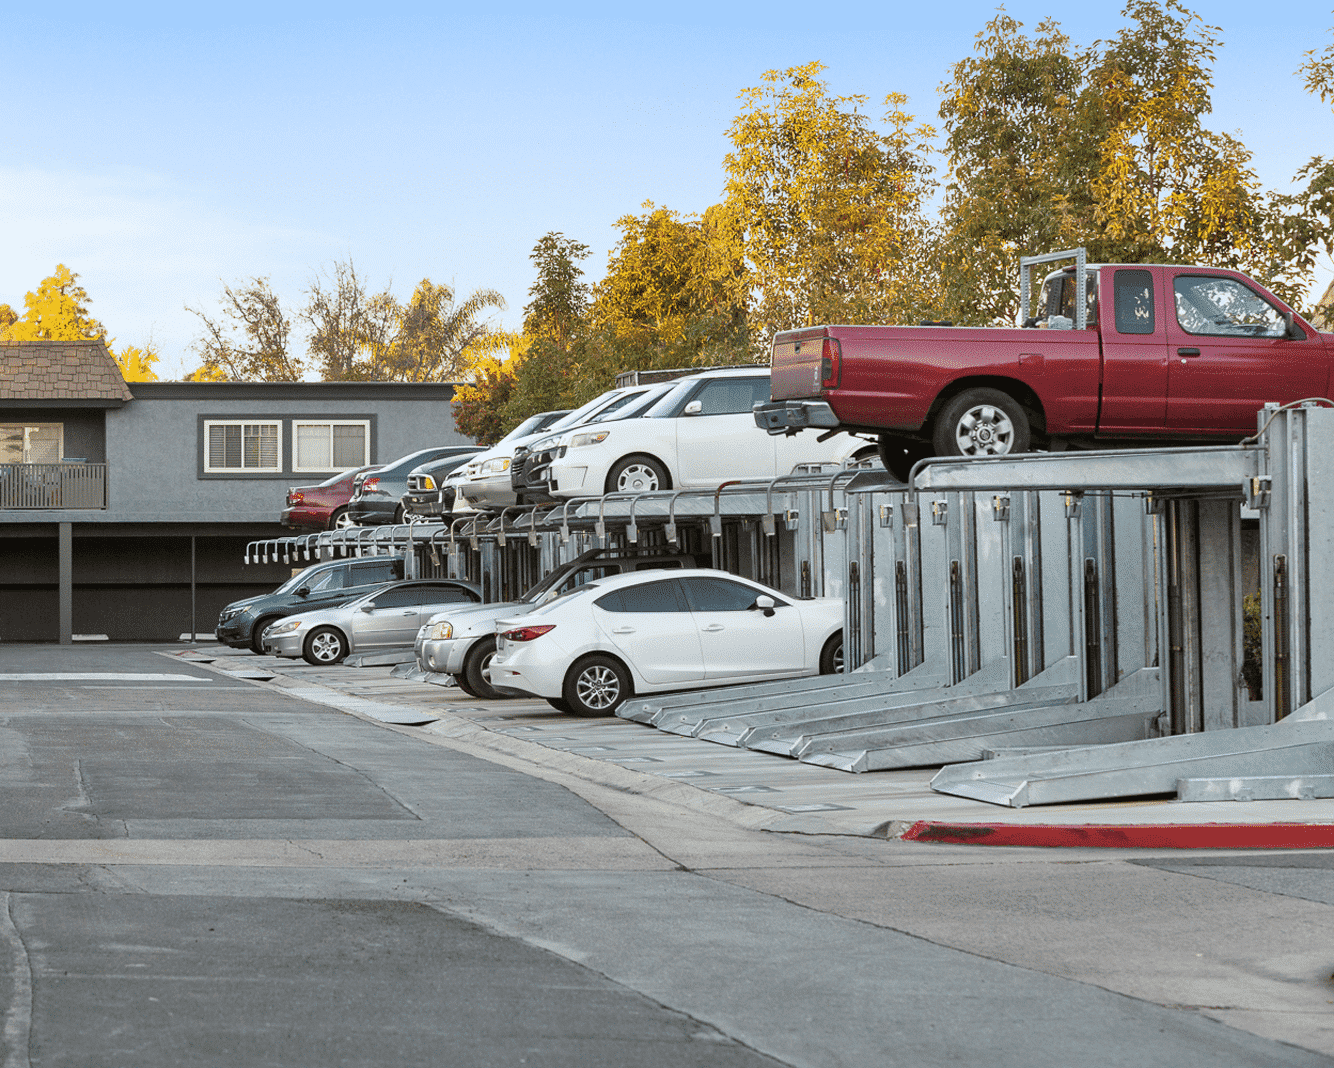 Parking lot with lifts